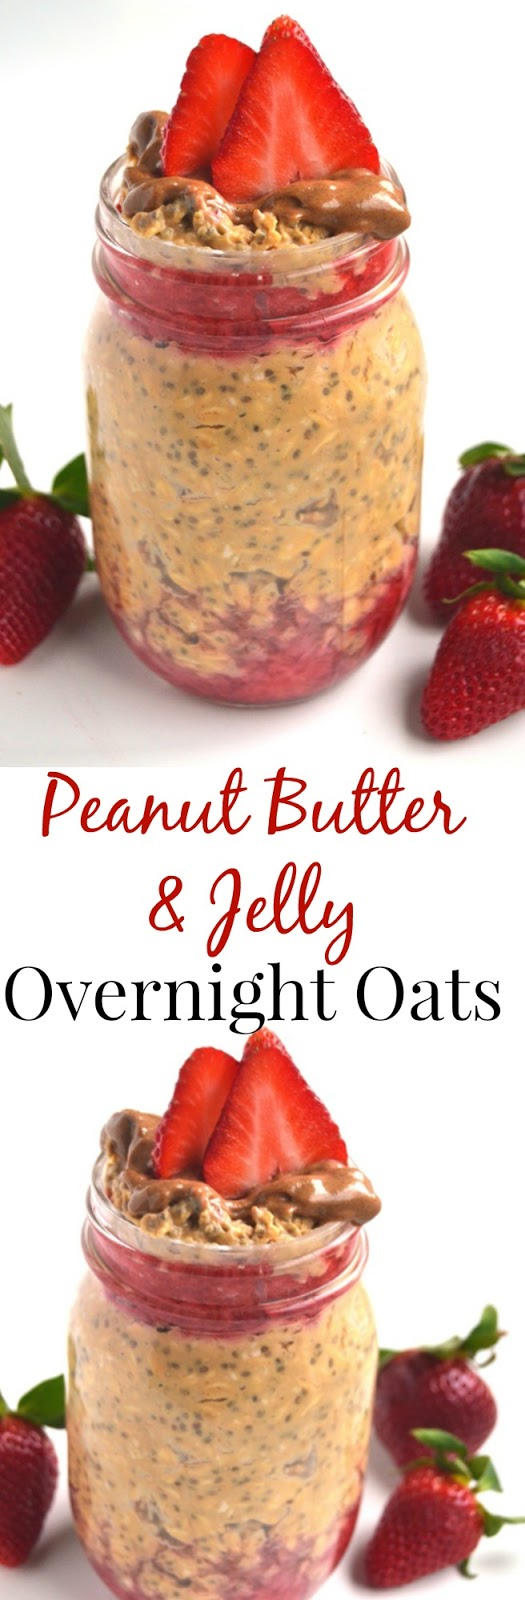 Peanut Butter and Jelly Overnight Oats take 5 minutes of prep time the night before and you will have a delicious breakfast ready to go in the morning! www.nutritionistreviews.com